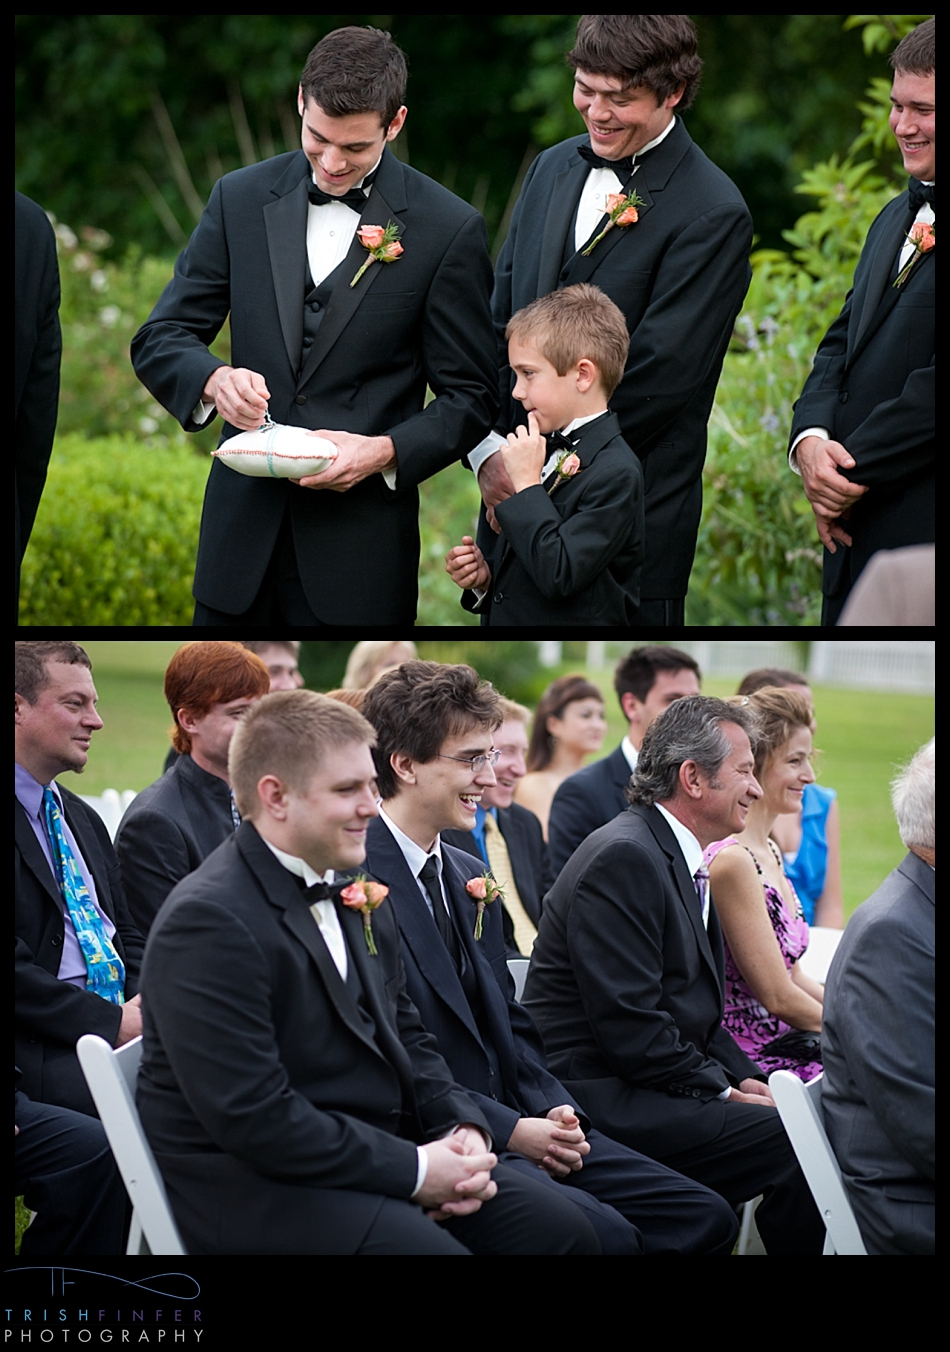 Wedding Rings Ceremony Laughing